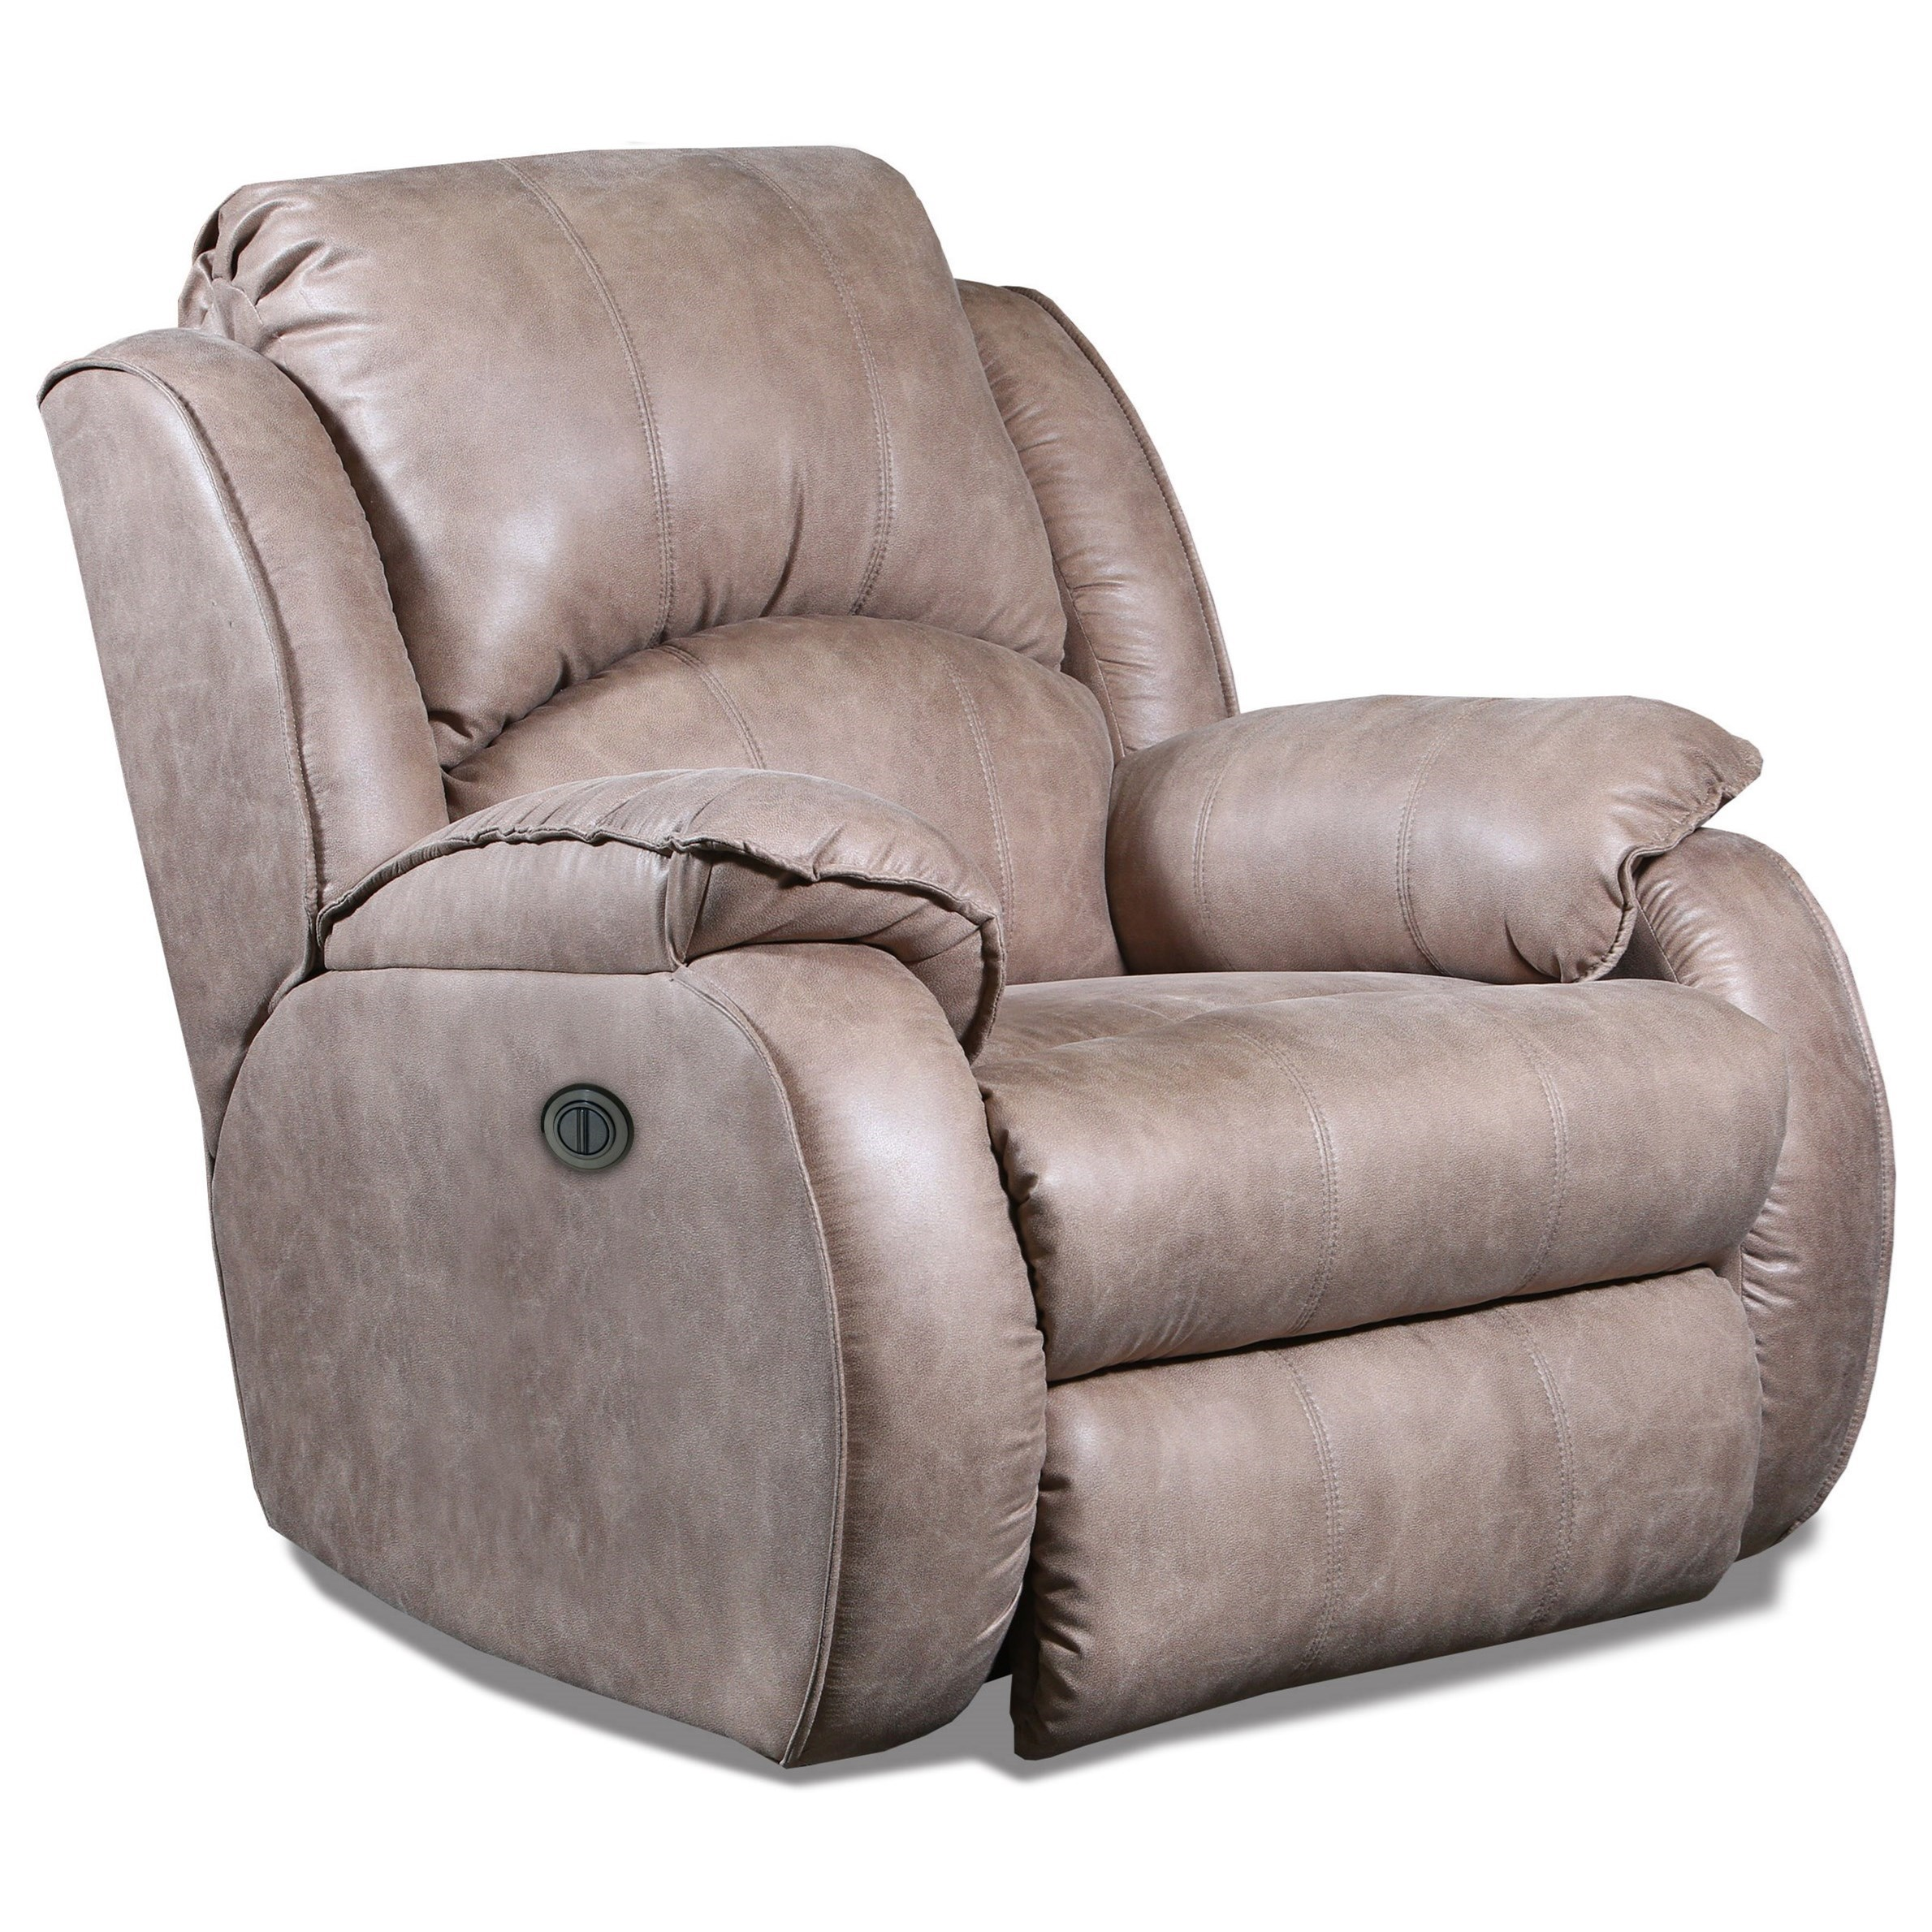 Cagney Power Headrest Wallhugger Recliner by Southern Motion at Darvin Furniture